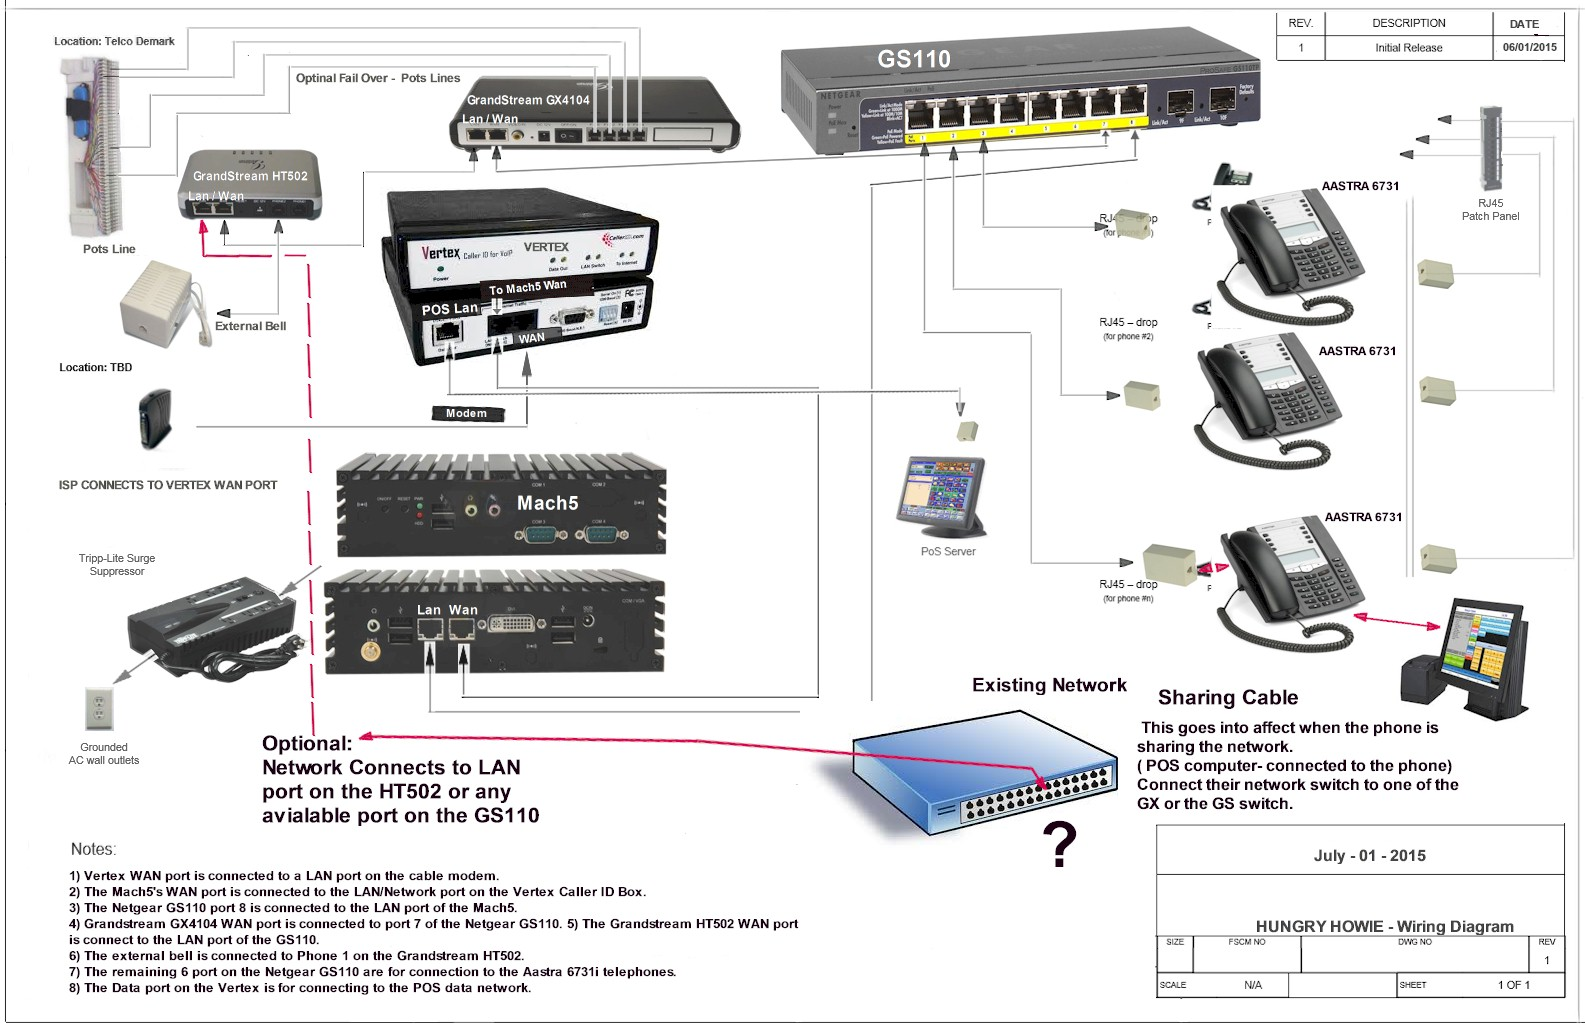 hungry howie3 rgranillo57 crosswind voip support voip wiring diagram at gsmx.co